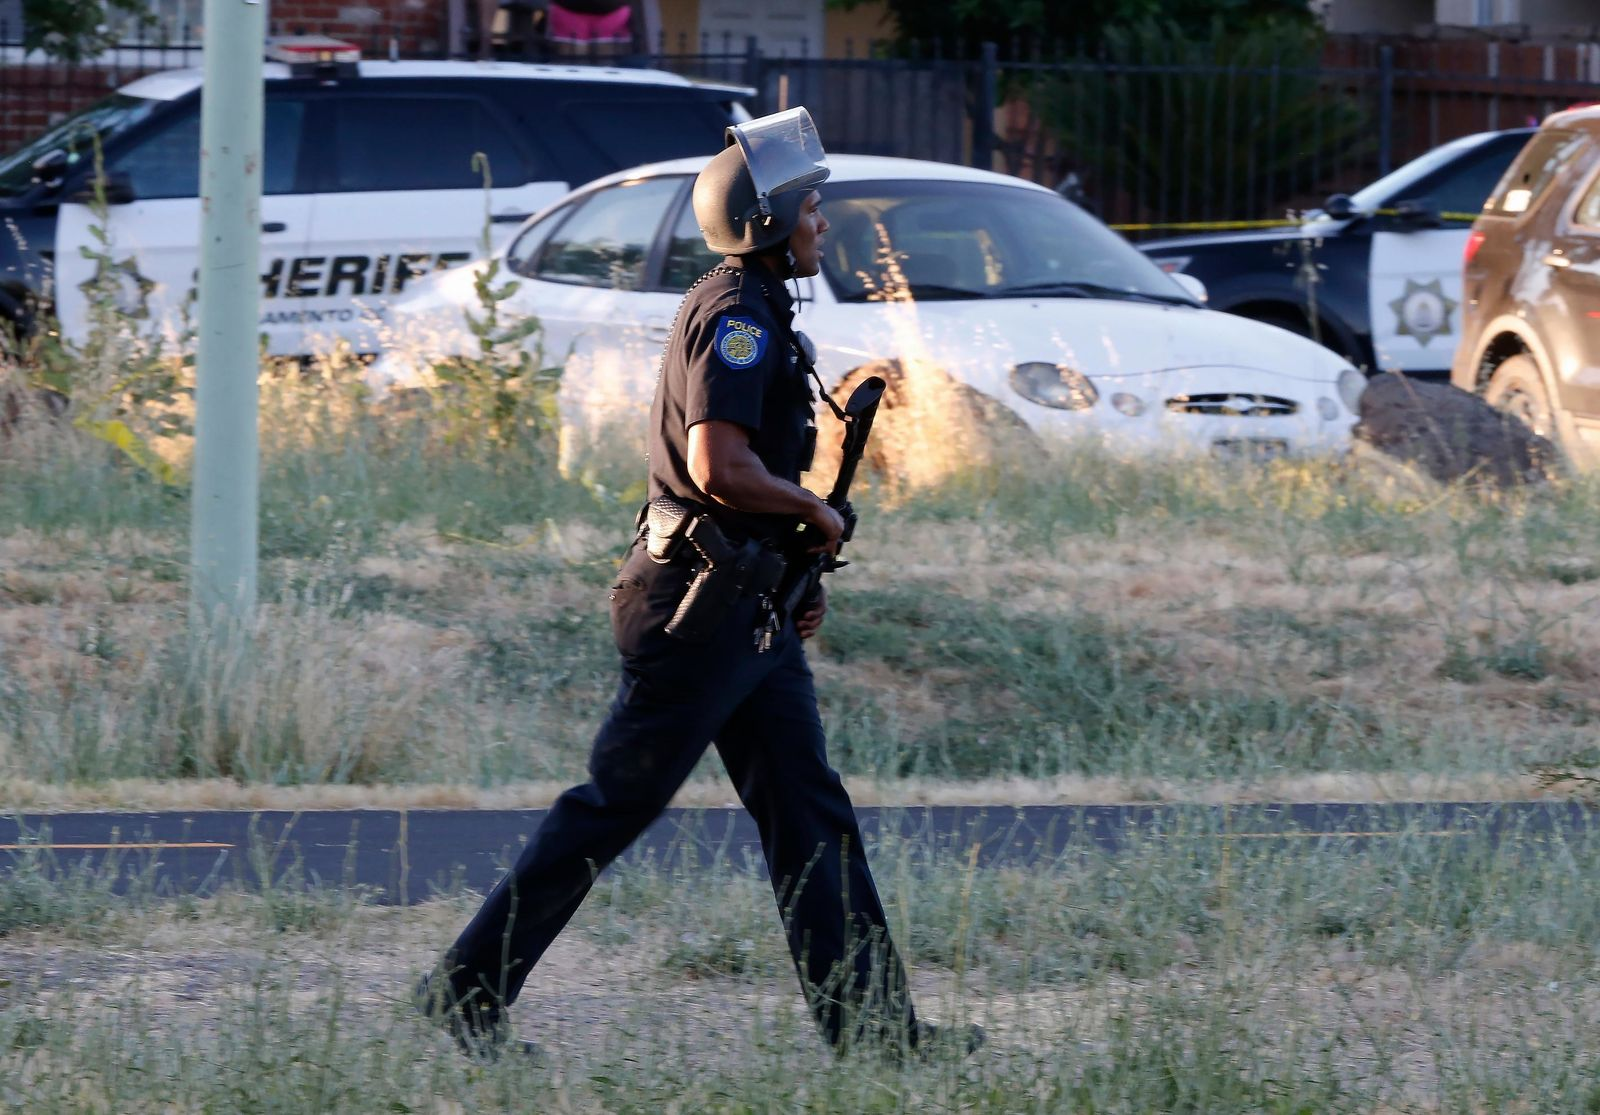 A Sacramento Police officer responds to the shooting of a fellow officer in Sacramento, Calif., Wednesday, June 19, 2019. (AP Photo/Rich Pedroncelli)